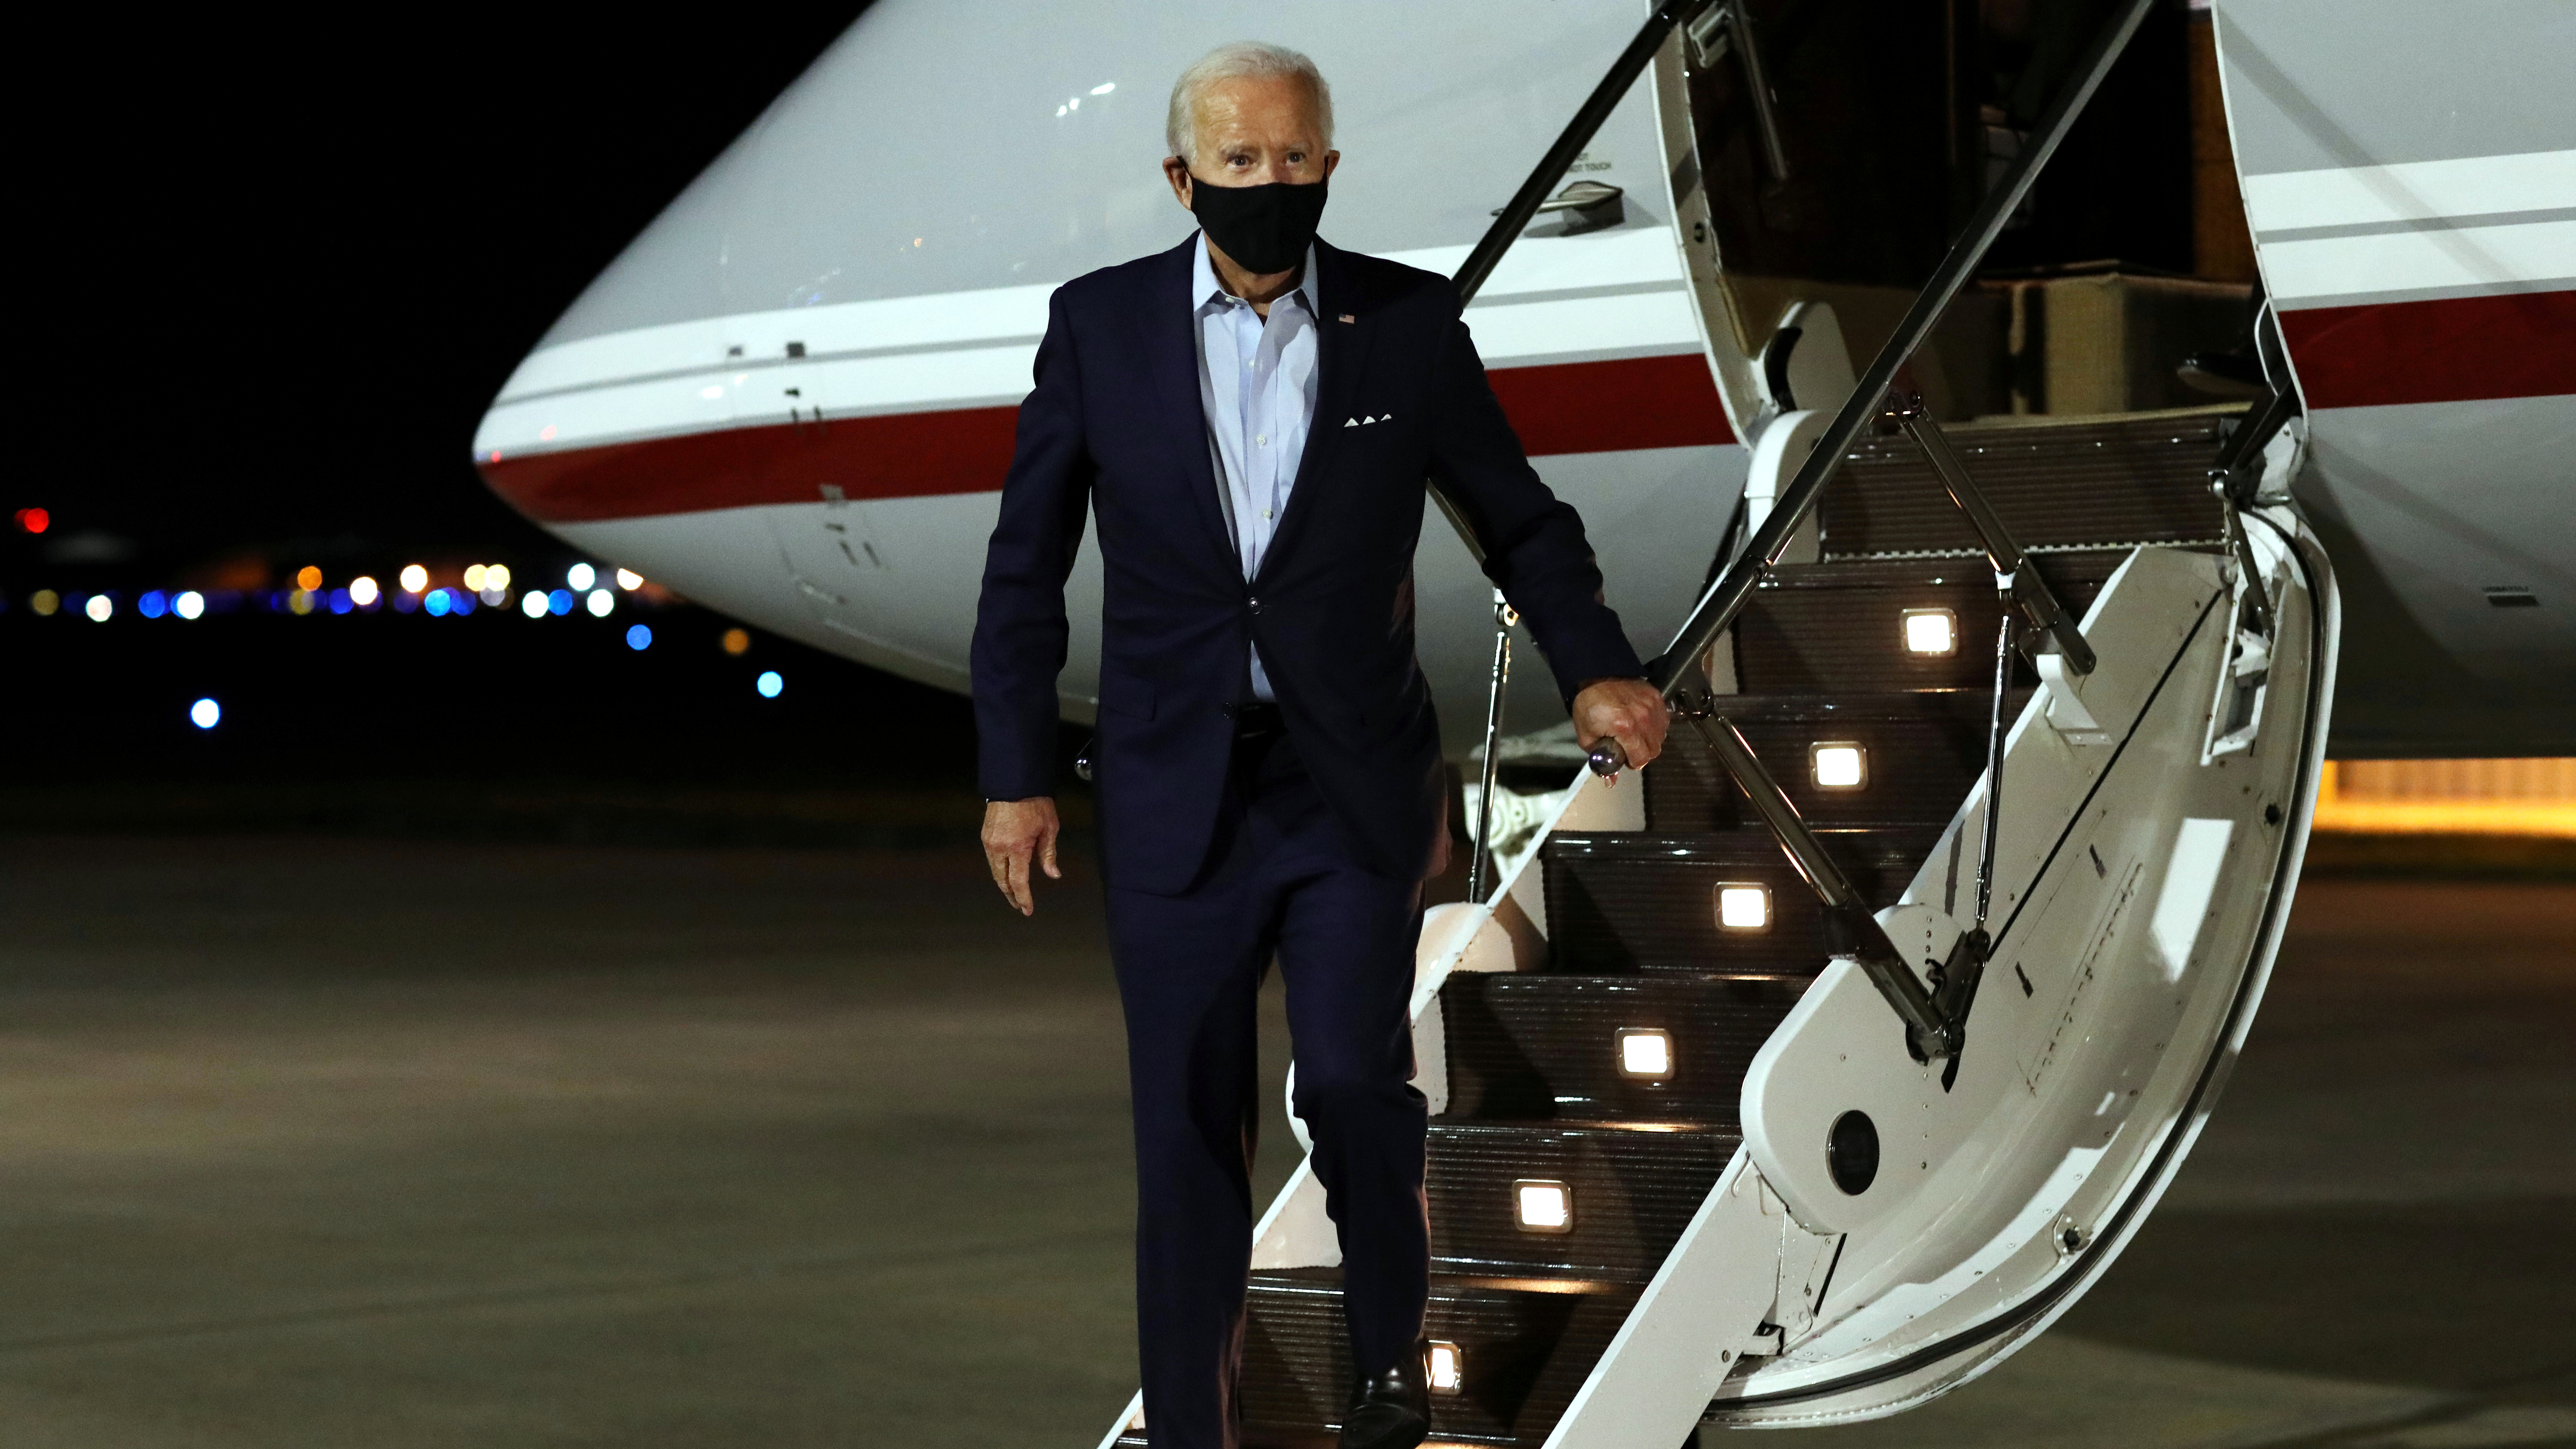 Democratic U.S. presidential nominee Joe Biden disembarks his plane after arriving at New Castle Airport in New Castle